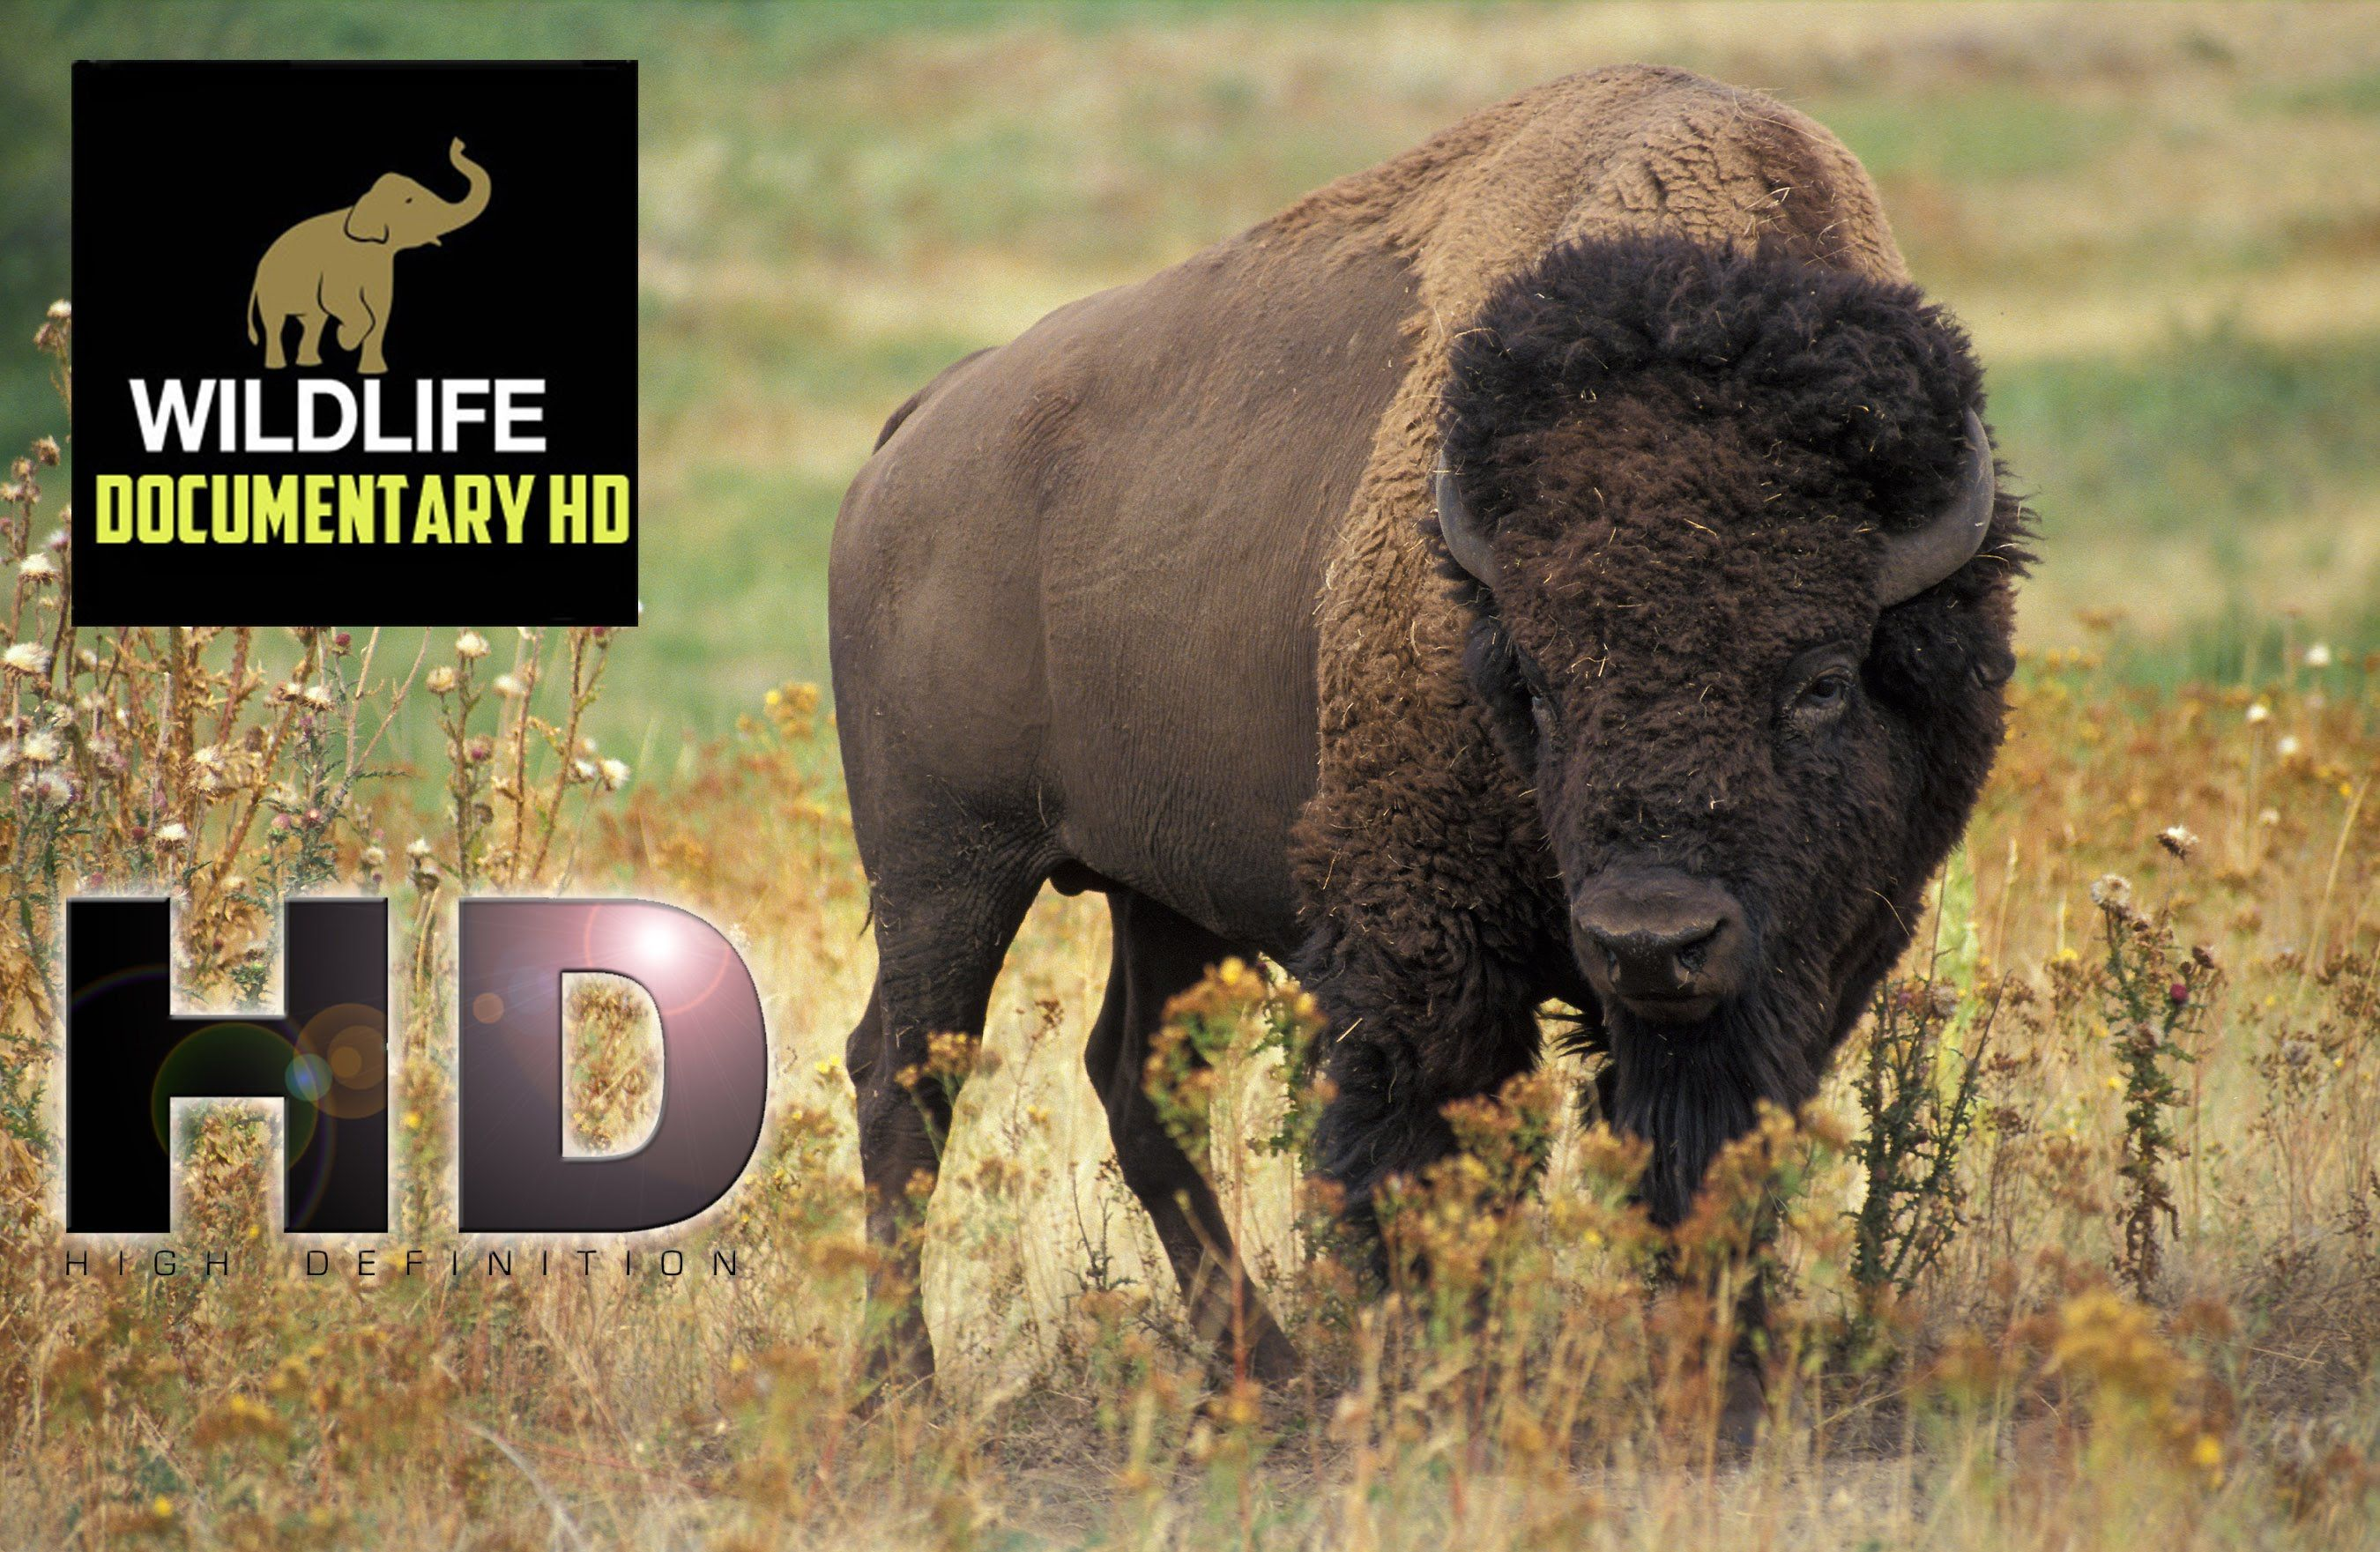 Buffalo Thunderbeast Wildlife Documentary HD American